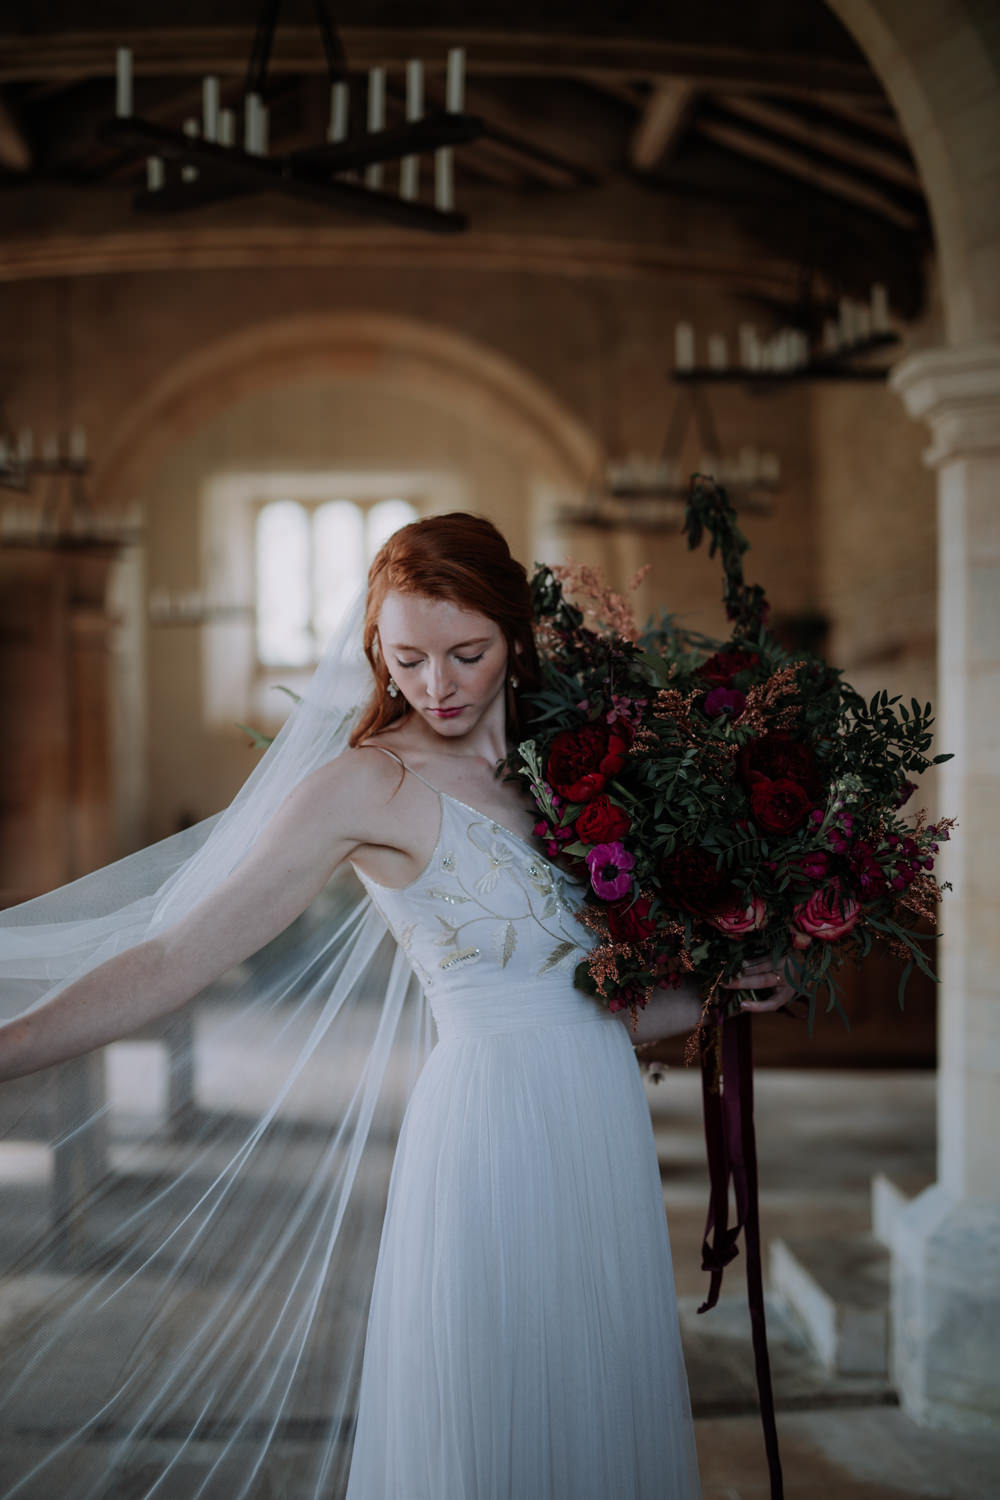 Bride Bridal Dress Gown Veil Silk Tulle Emellished Floral Industrial Luxe Wedding Ideas Balloon Installation Ayelle Photography